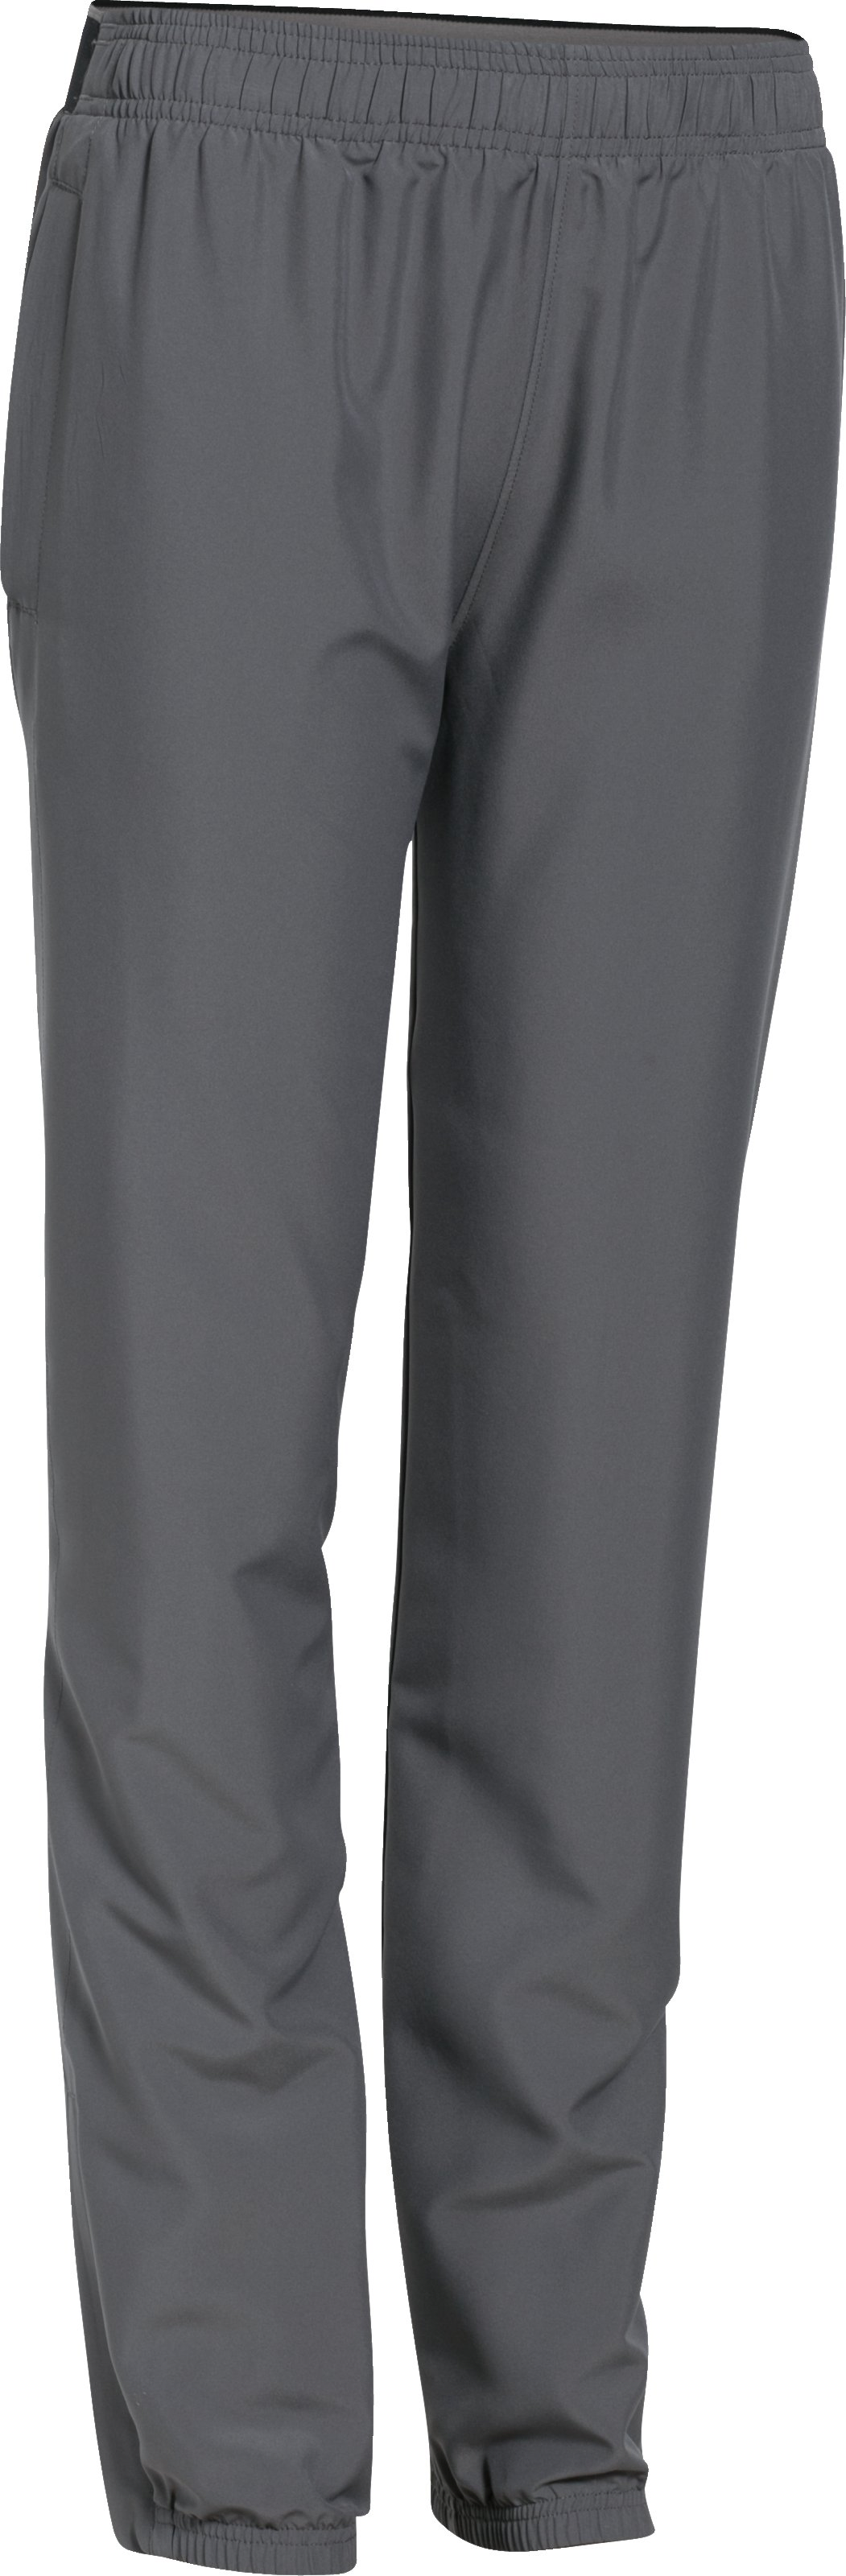 Boys' UA Storm Powerhouse Pants, Graphite